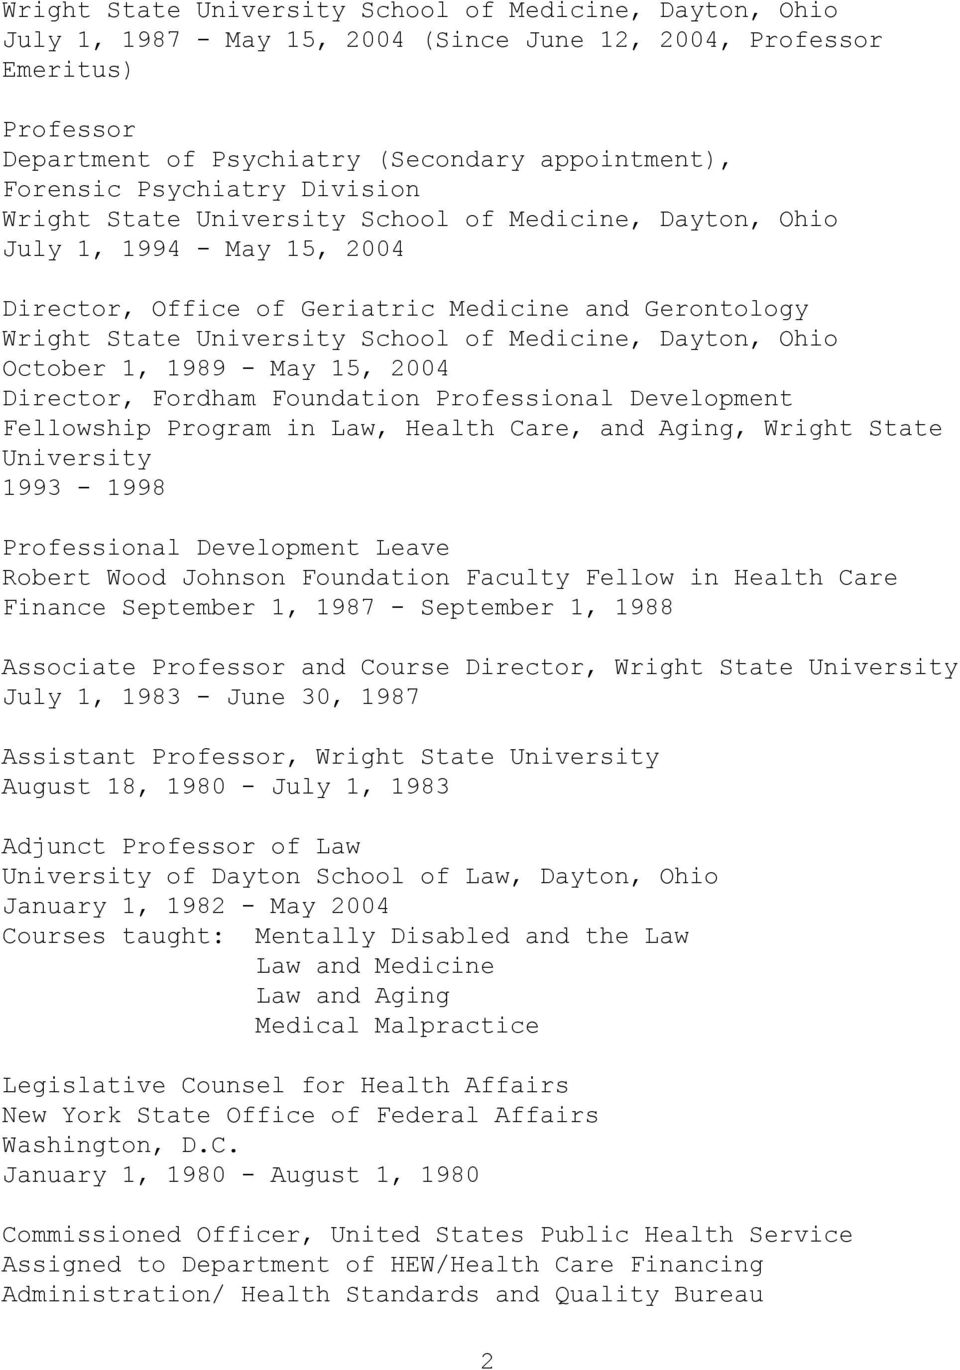 Medicine, Dayton, Ohio October 1, 1989 - May 15, 2004 Director, Fordham Foundation Professional Development Fellowship Program in Law, Health Care, and Aging, Wright State University 1993-1998